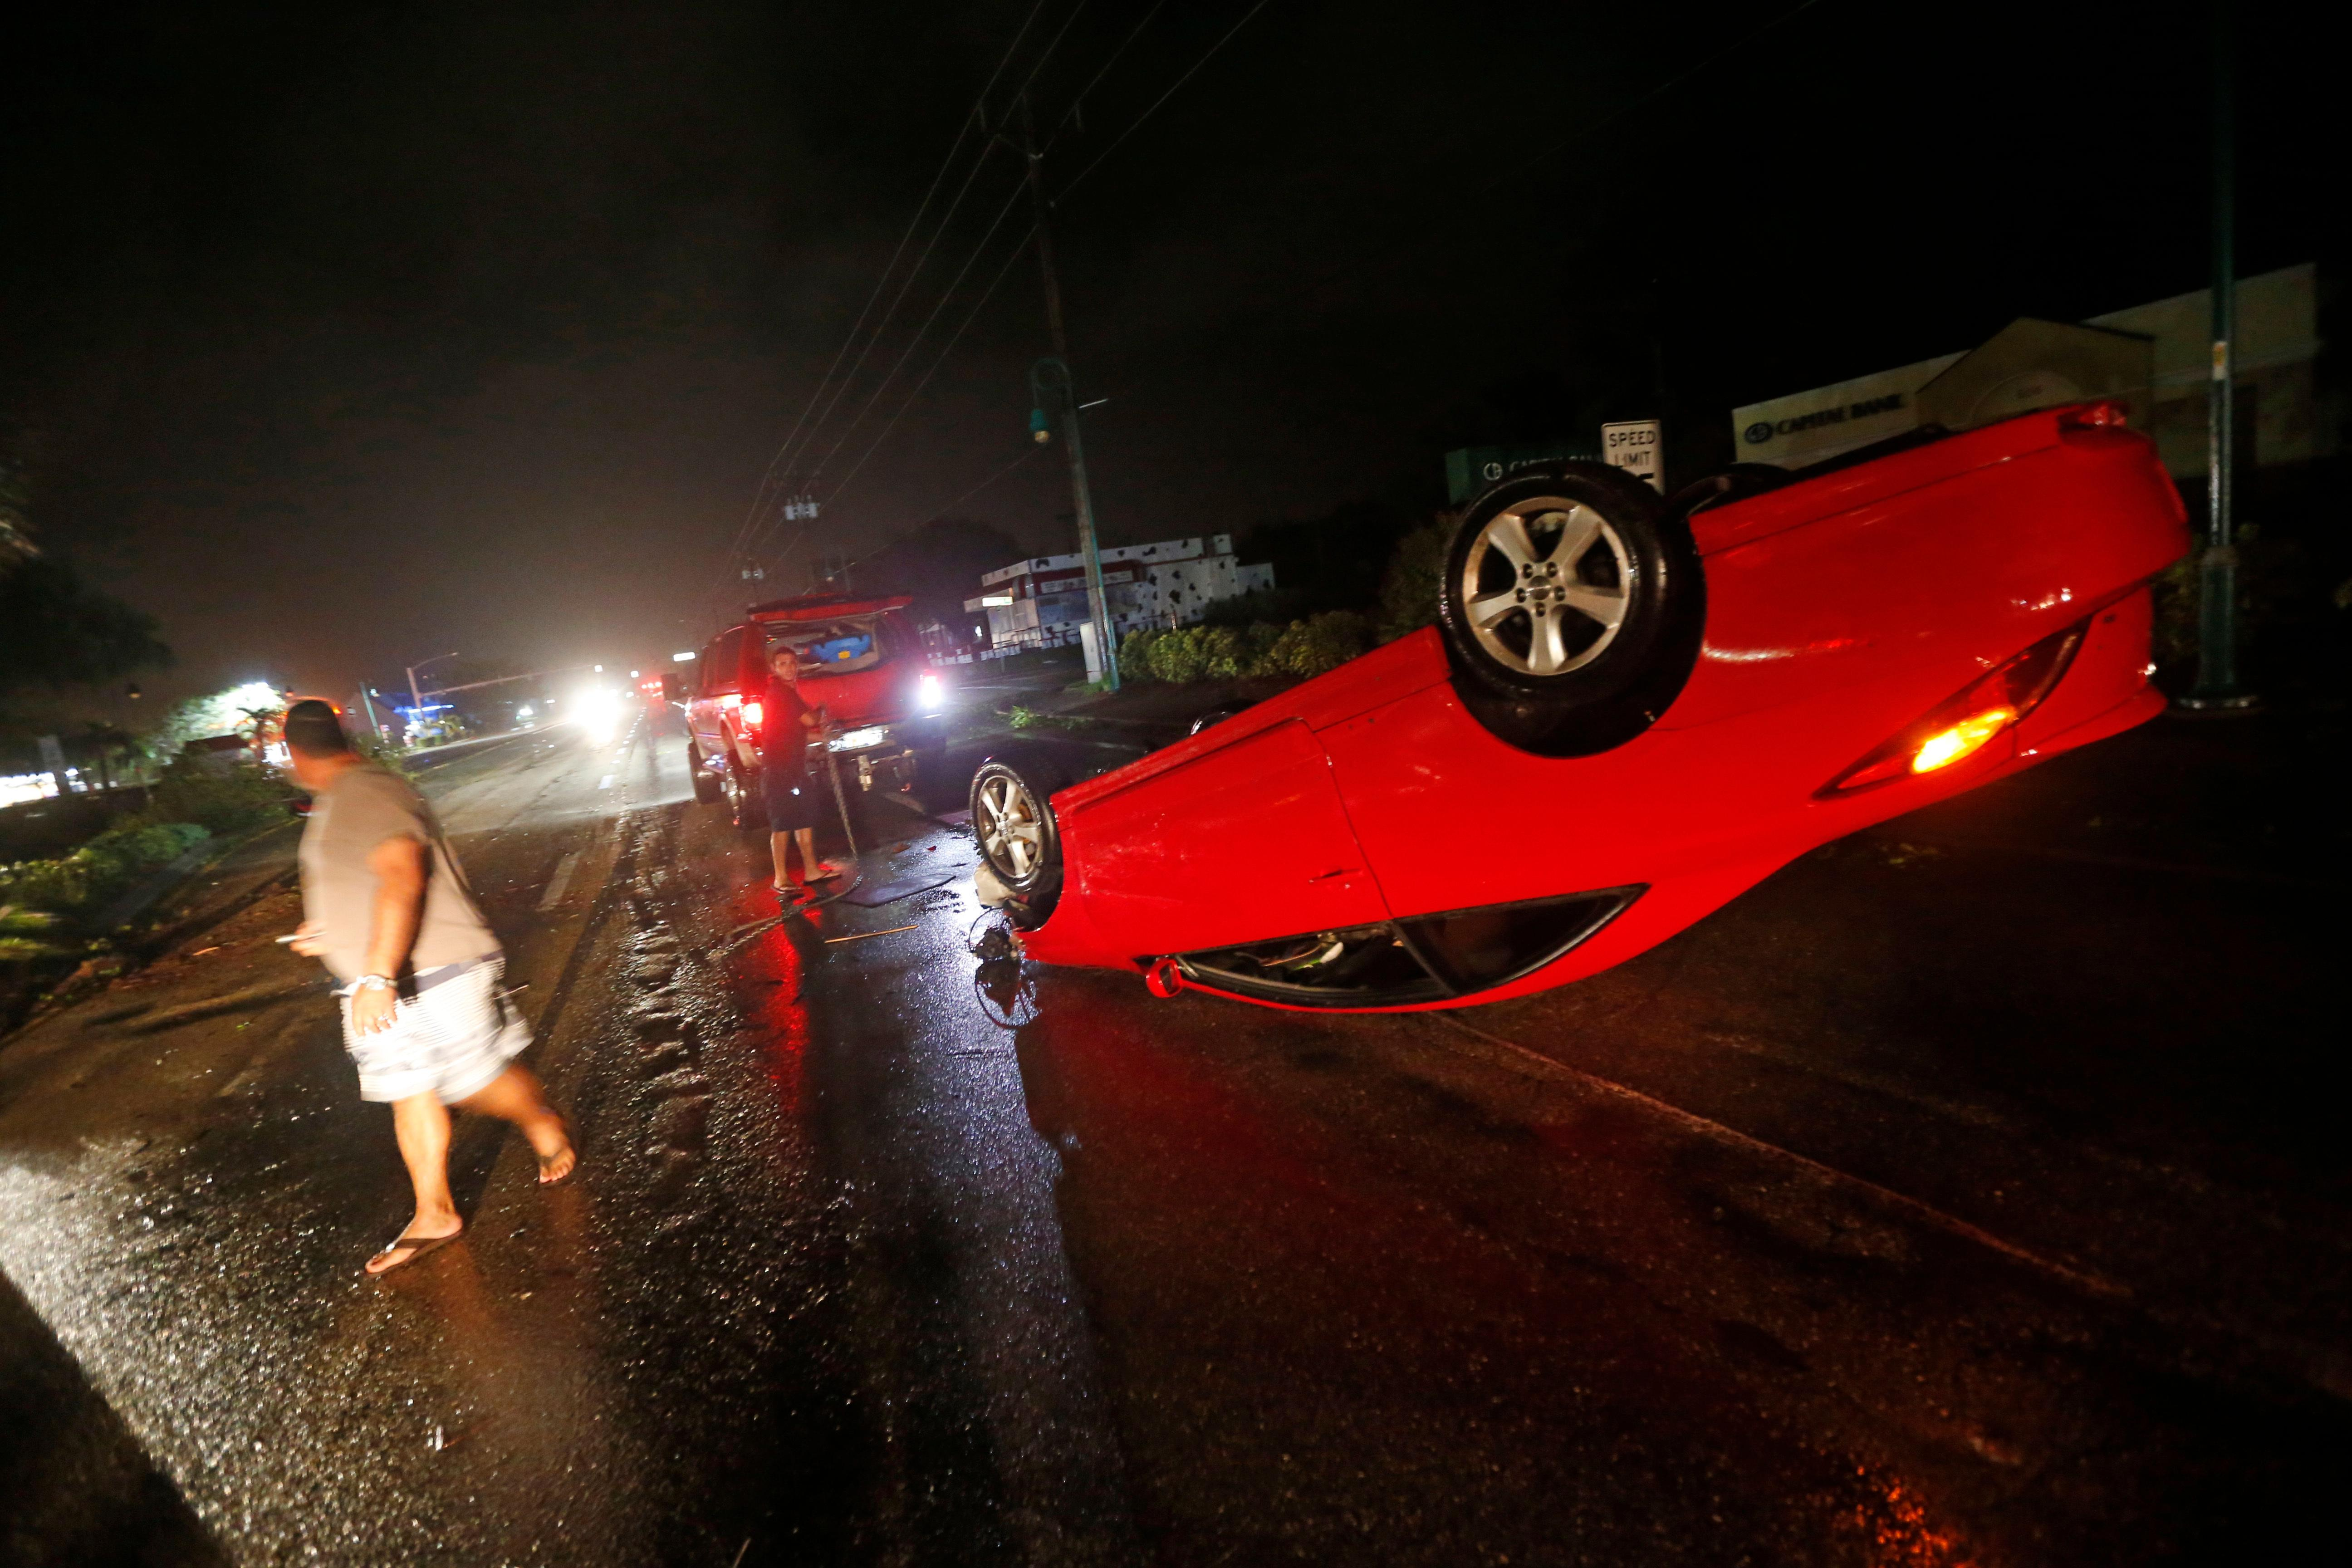 People tend to a car that flipped over on Cape Coral Parkway during Hurricane Irma, in Cape Coral, Fla., Sunday, Sept. 10, 2017. (AP Photo/Gerald Herbert)